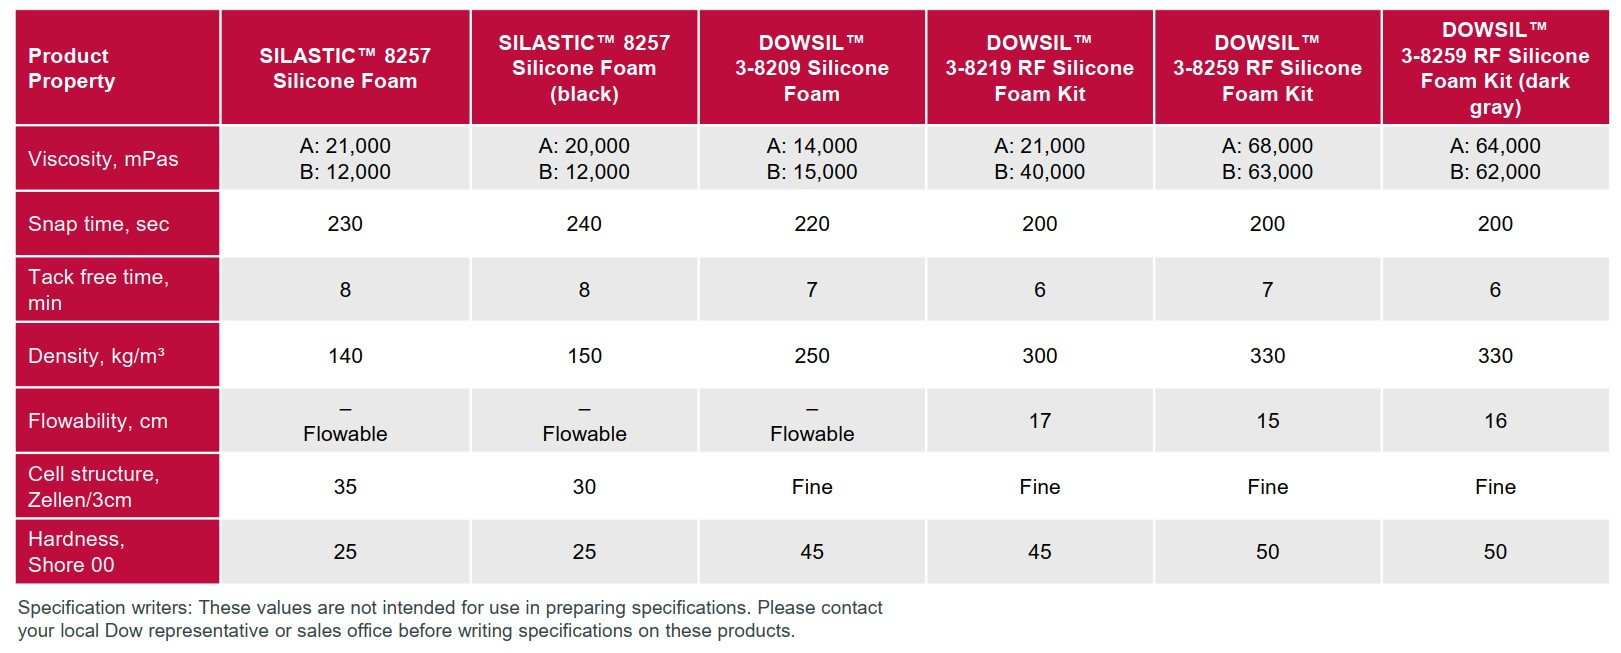 Typical properties of silicone foams